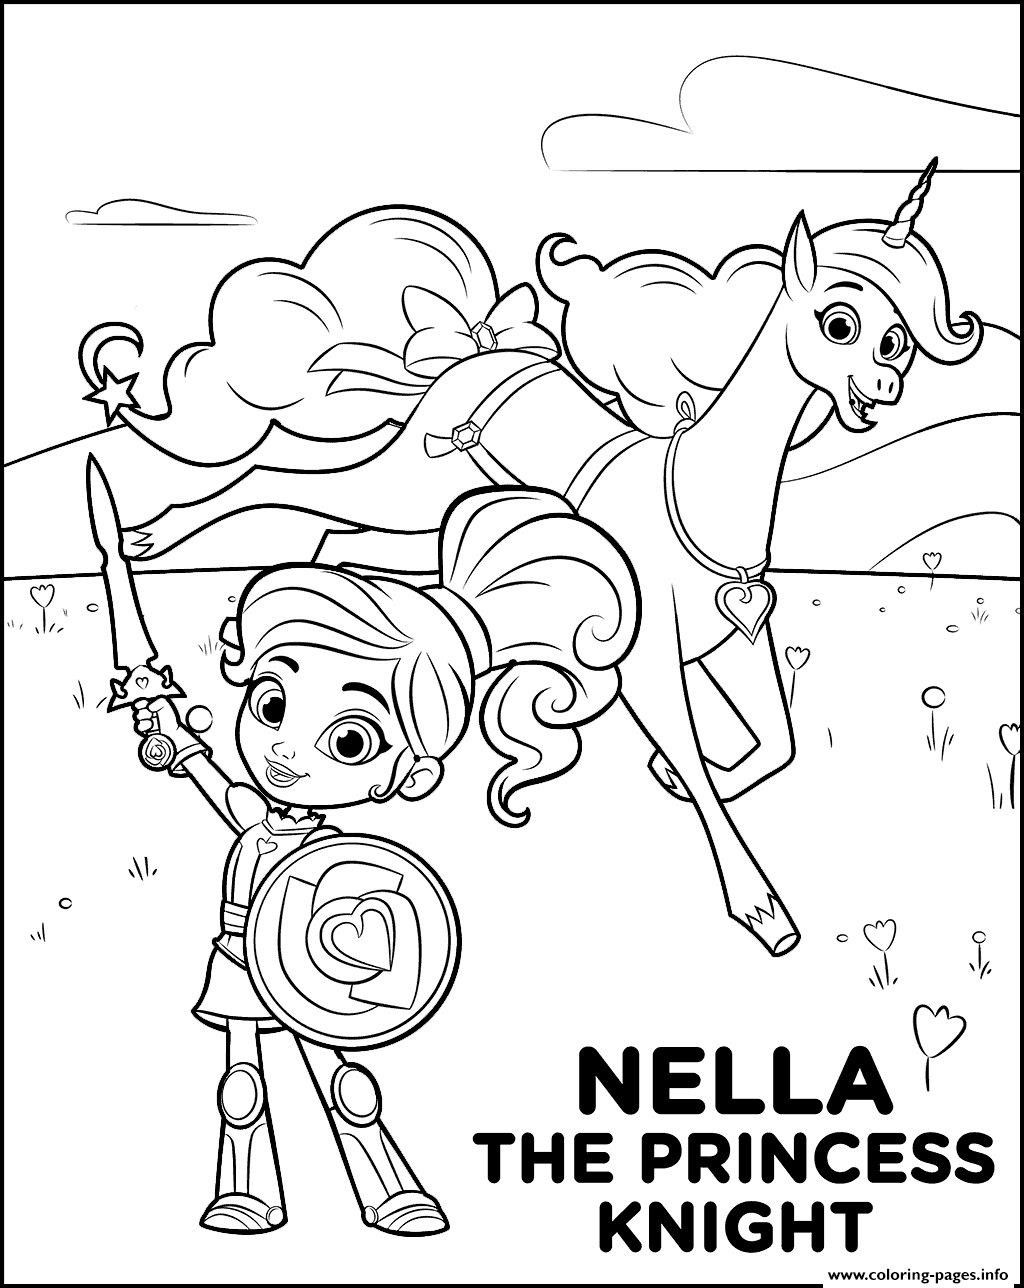 Nella The Princess Knight Coloring Page Youngandtae Com Princess Coloring Pages Princess Coloring Cartoon Coloring Pages